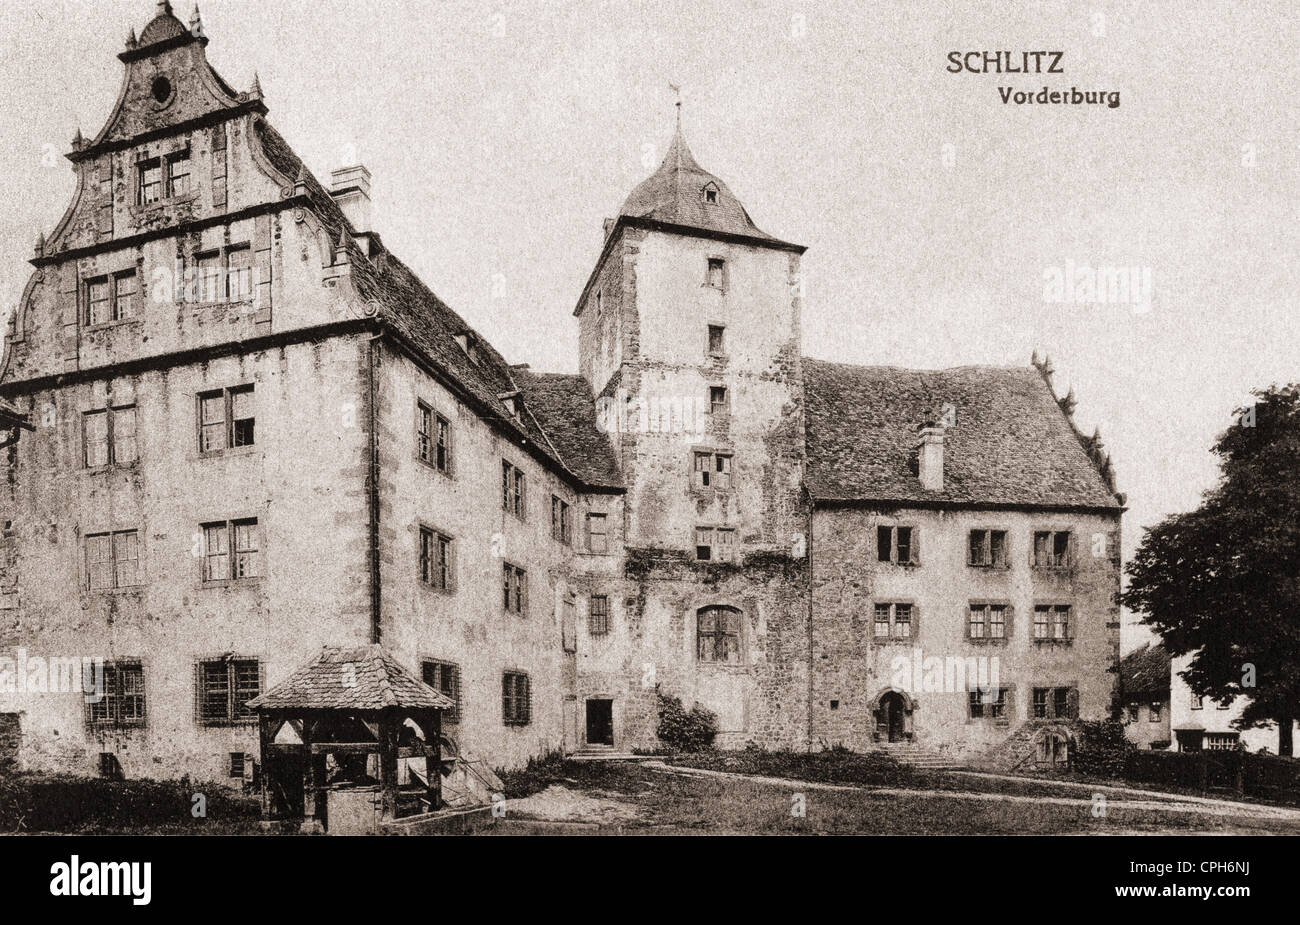 geography / travel, Germany, castles, Schlitz Castle, exterior view, front castle, picture postcard, publisher Otto - Stock Image